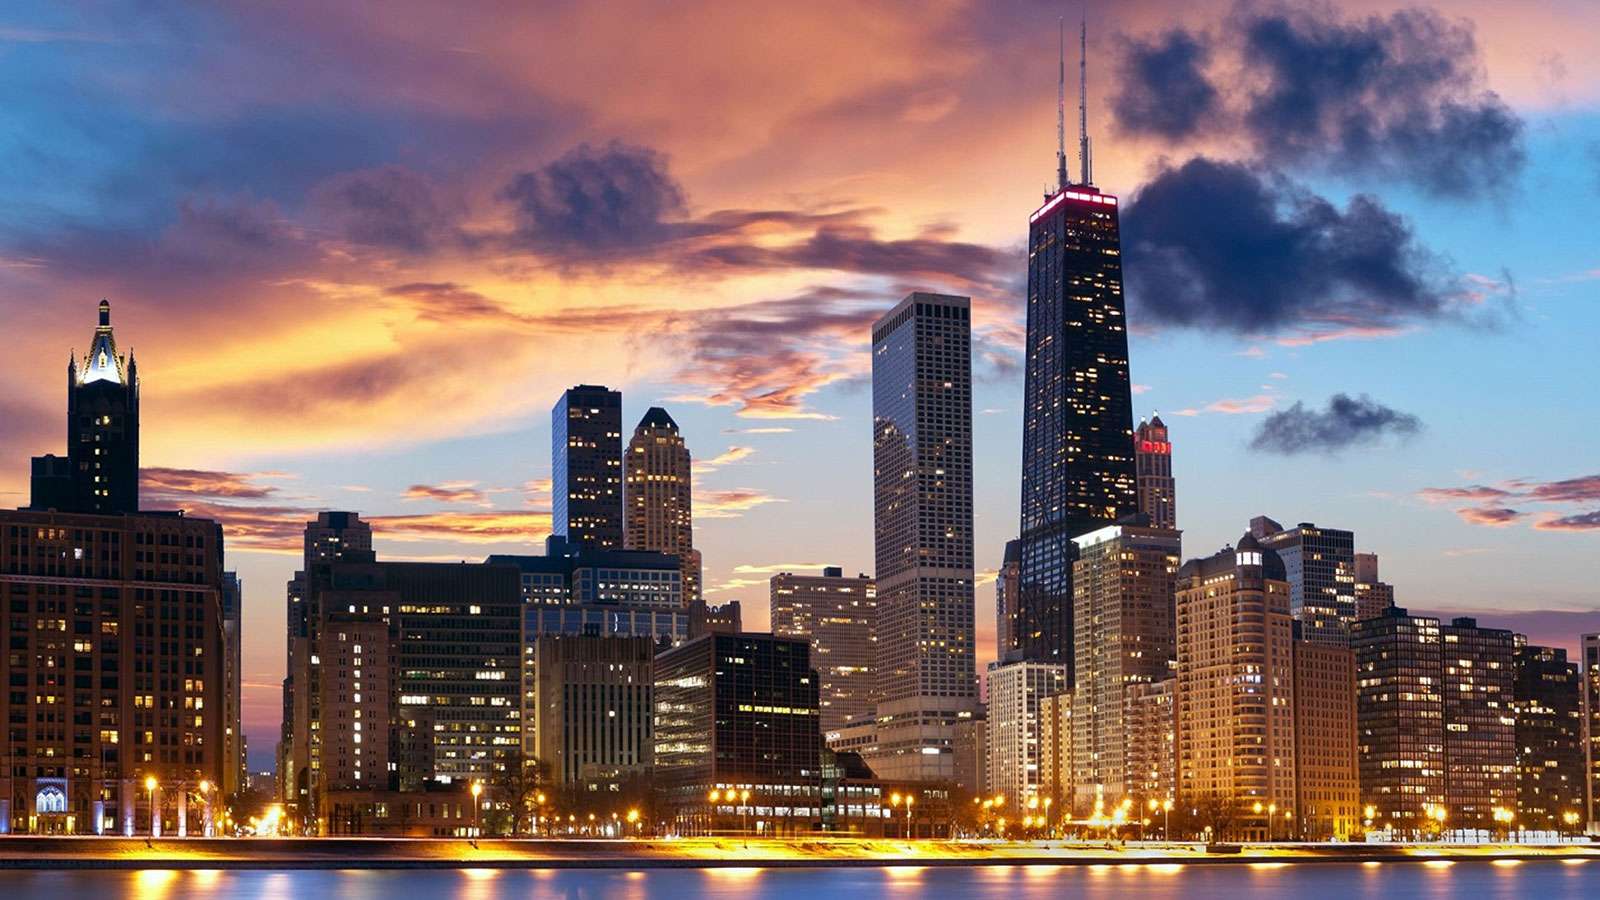 header_chicago_01